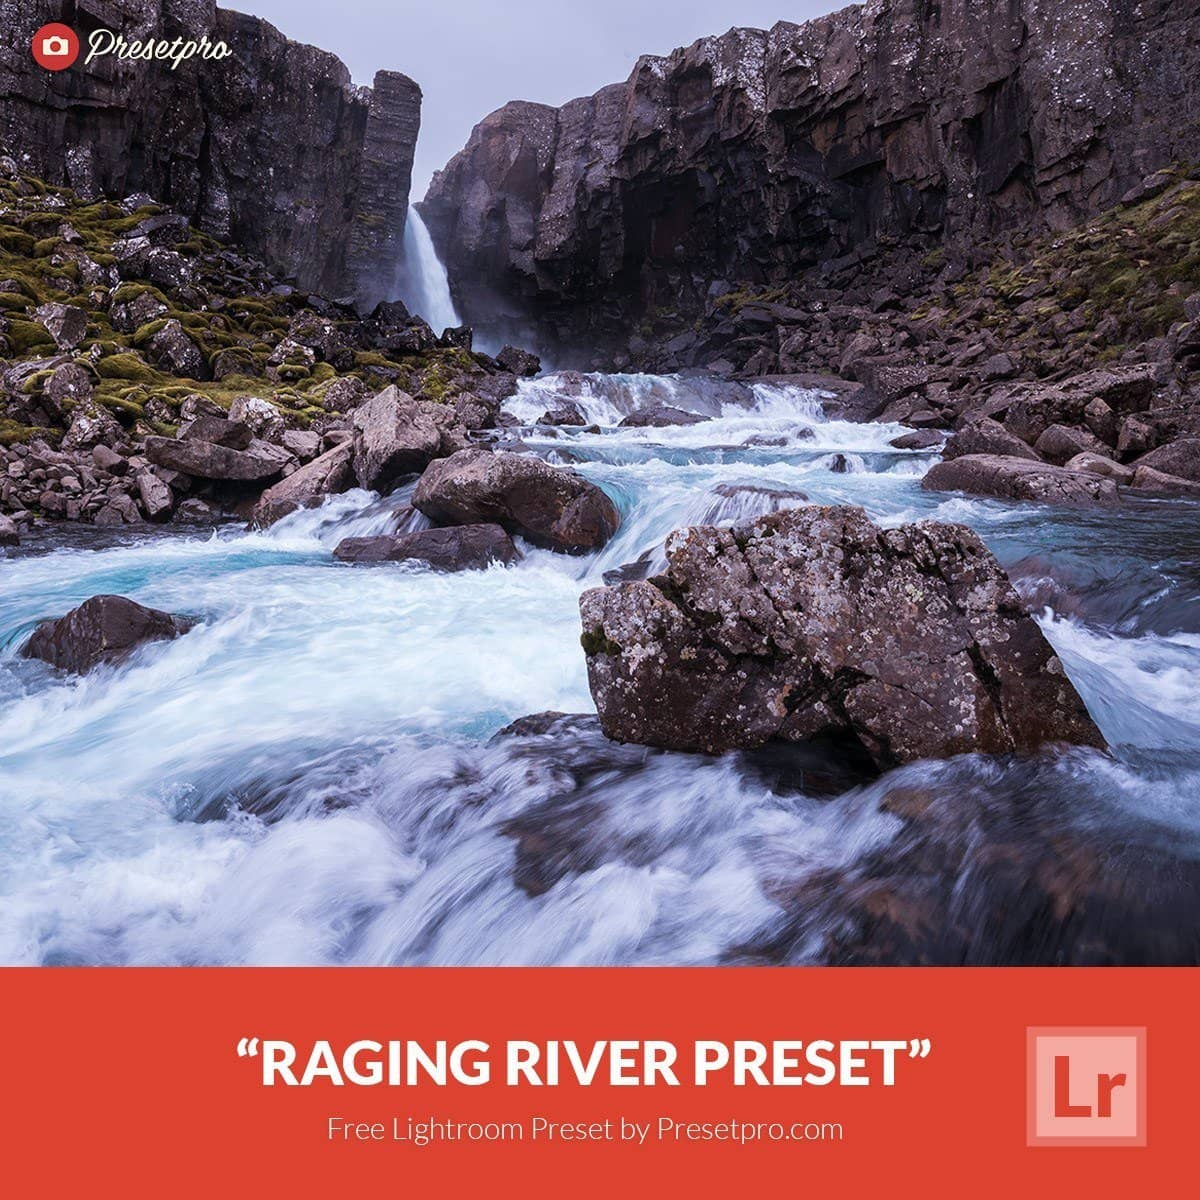 Free-Lightroom-Preset-Raging-River-Presetpro.com_